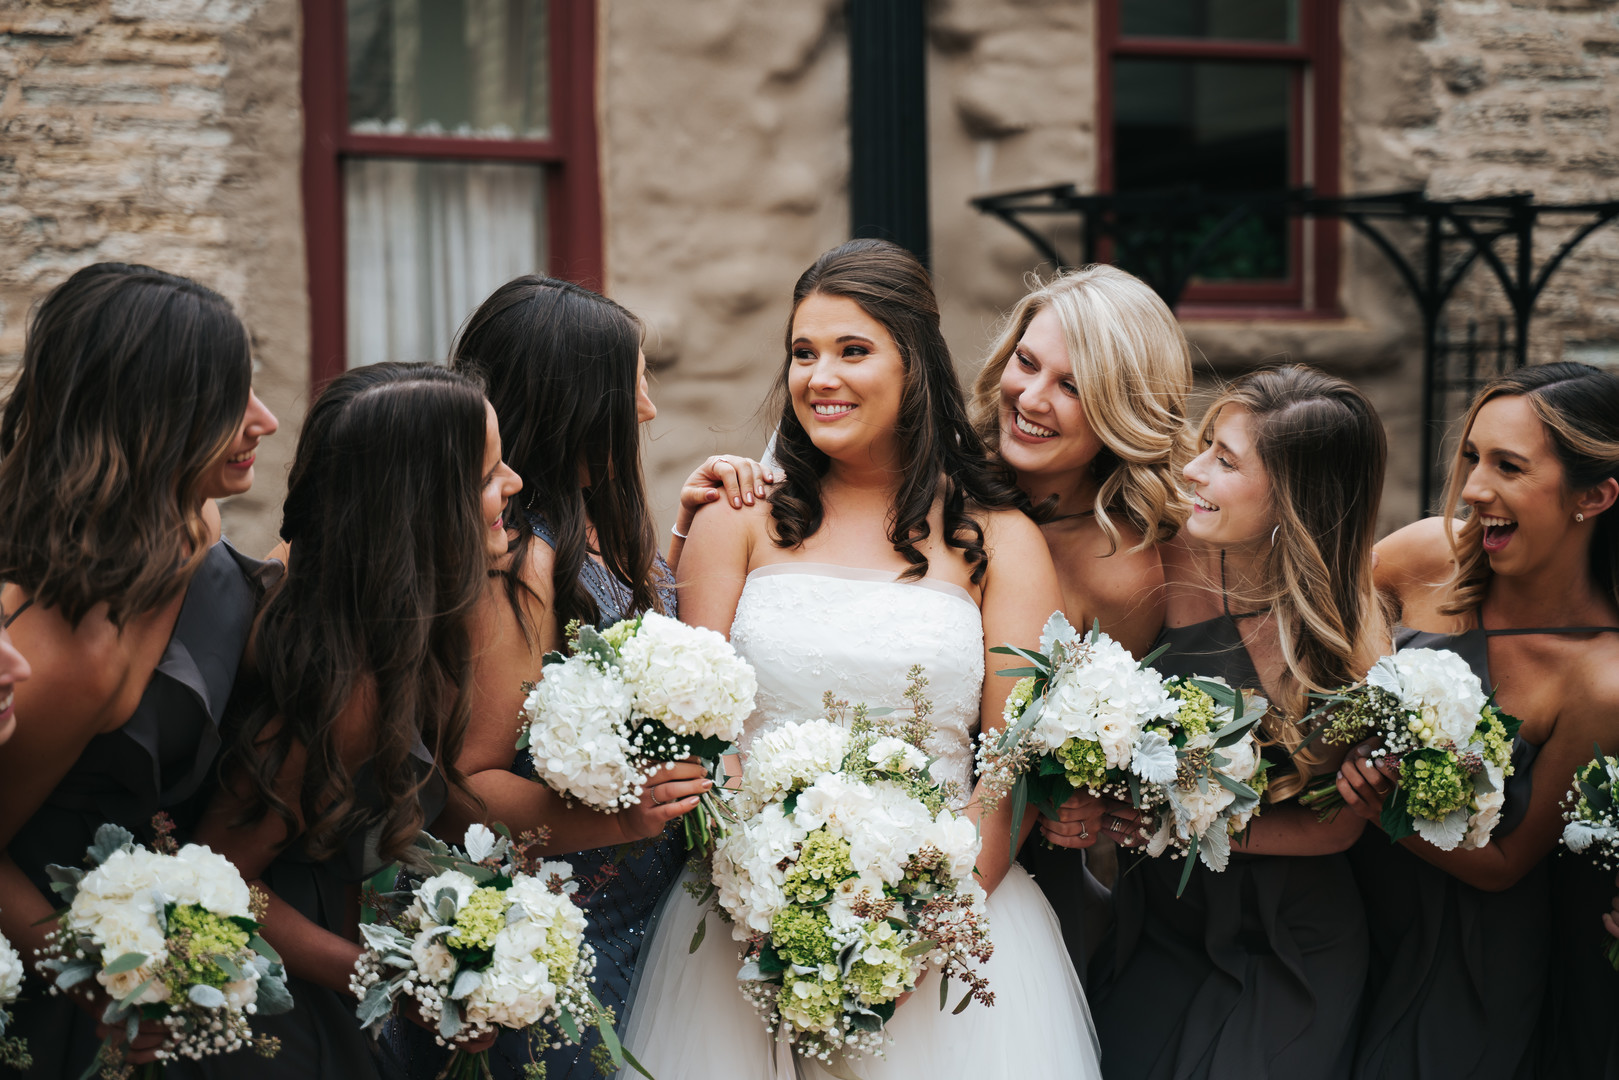 White and greenery wedding bouquets: Beautiful Illinois wedding at Riverside Receptions captured by Windy City Production. See more wedding ideas at CHItheeWED.com!